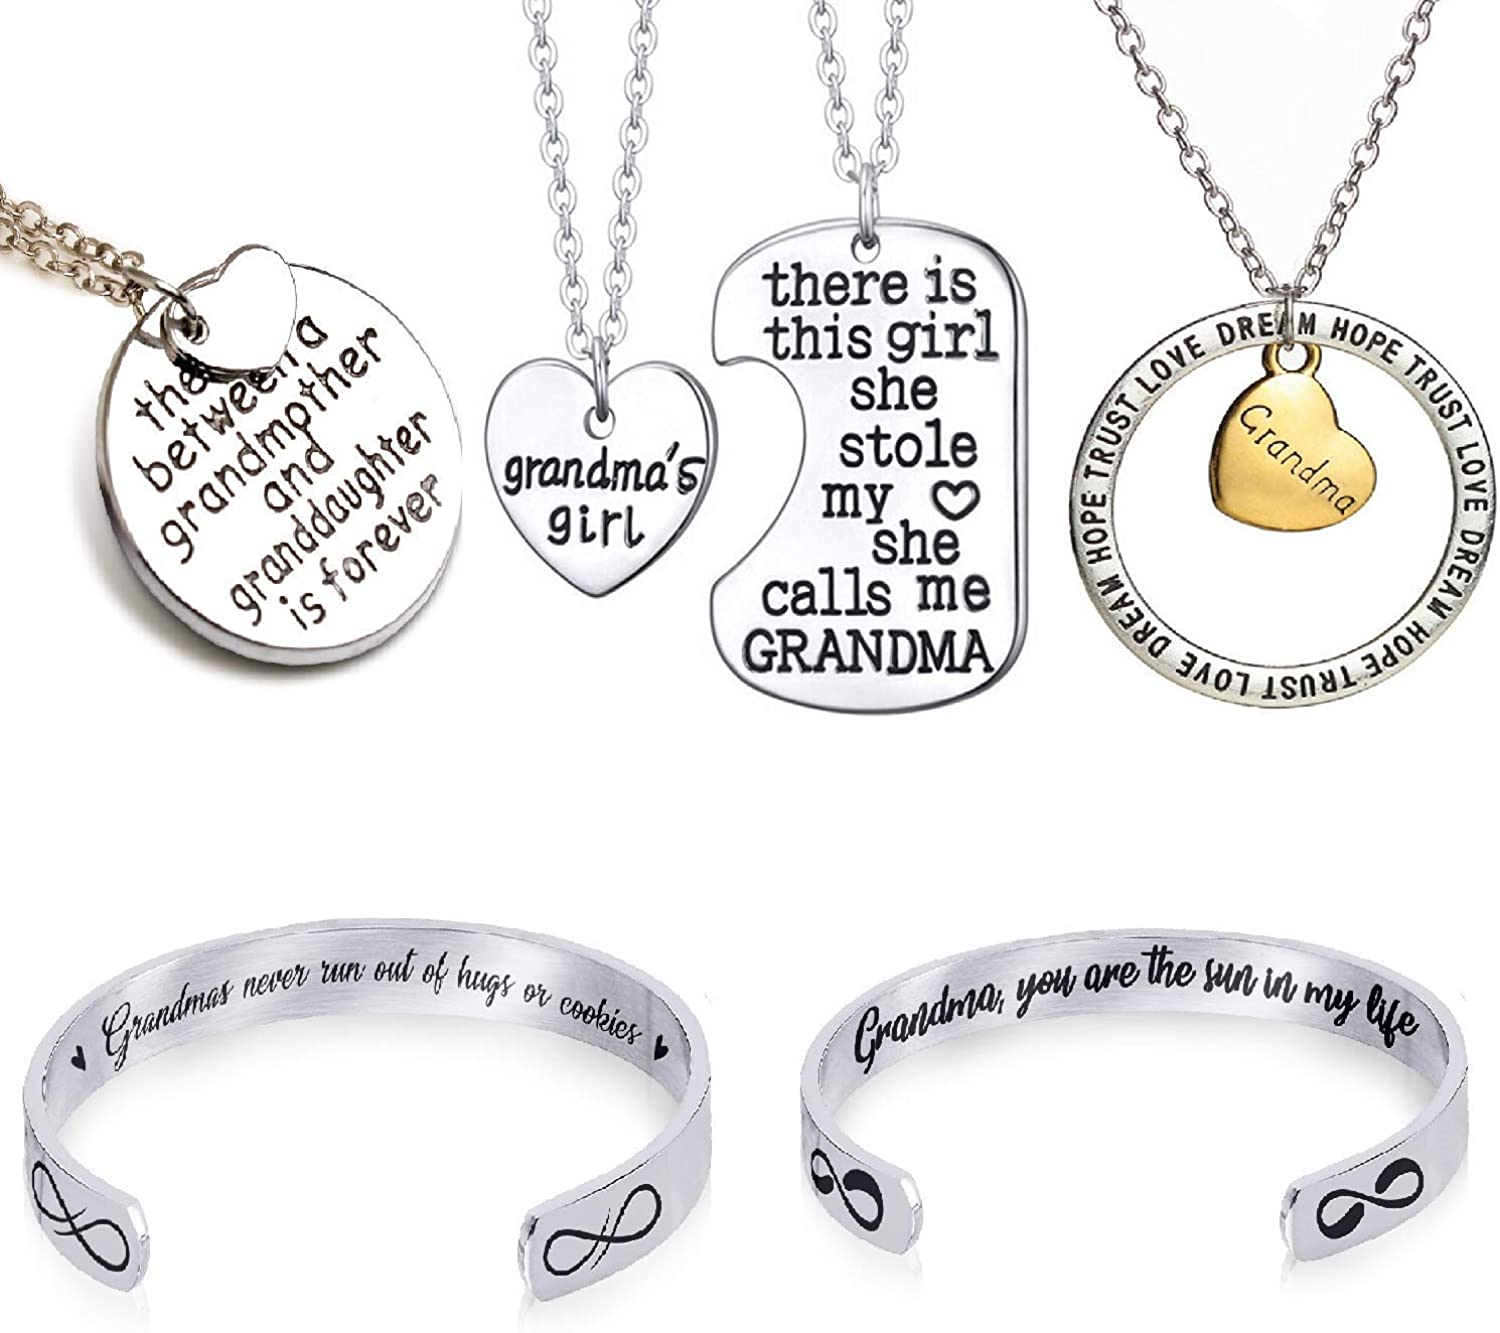 Set of 5 Grandma Pendant Necklaces and Bracelets - Perfect Girl for Grandmothers Granddaughters